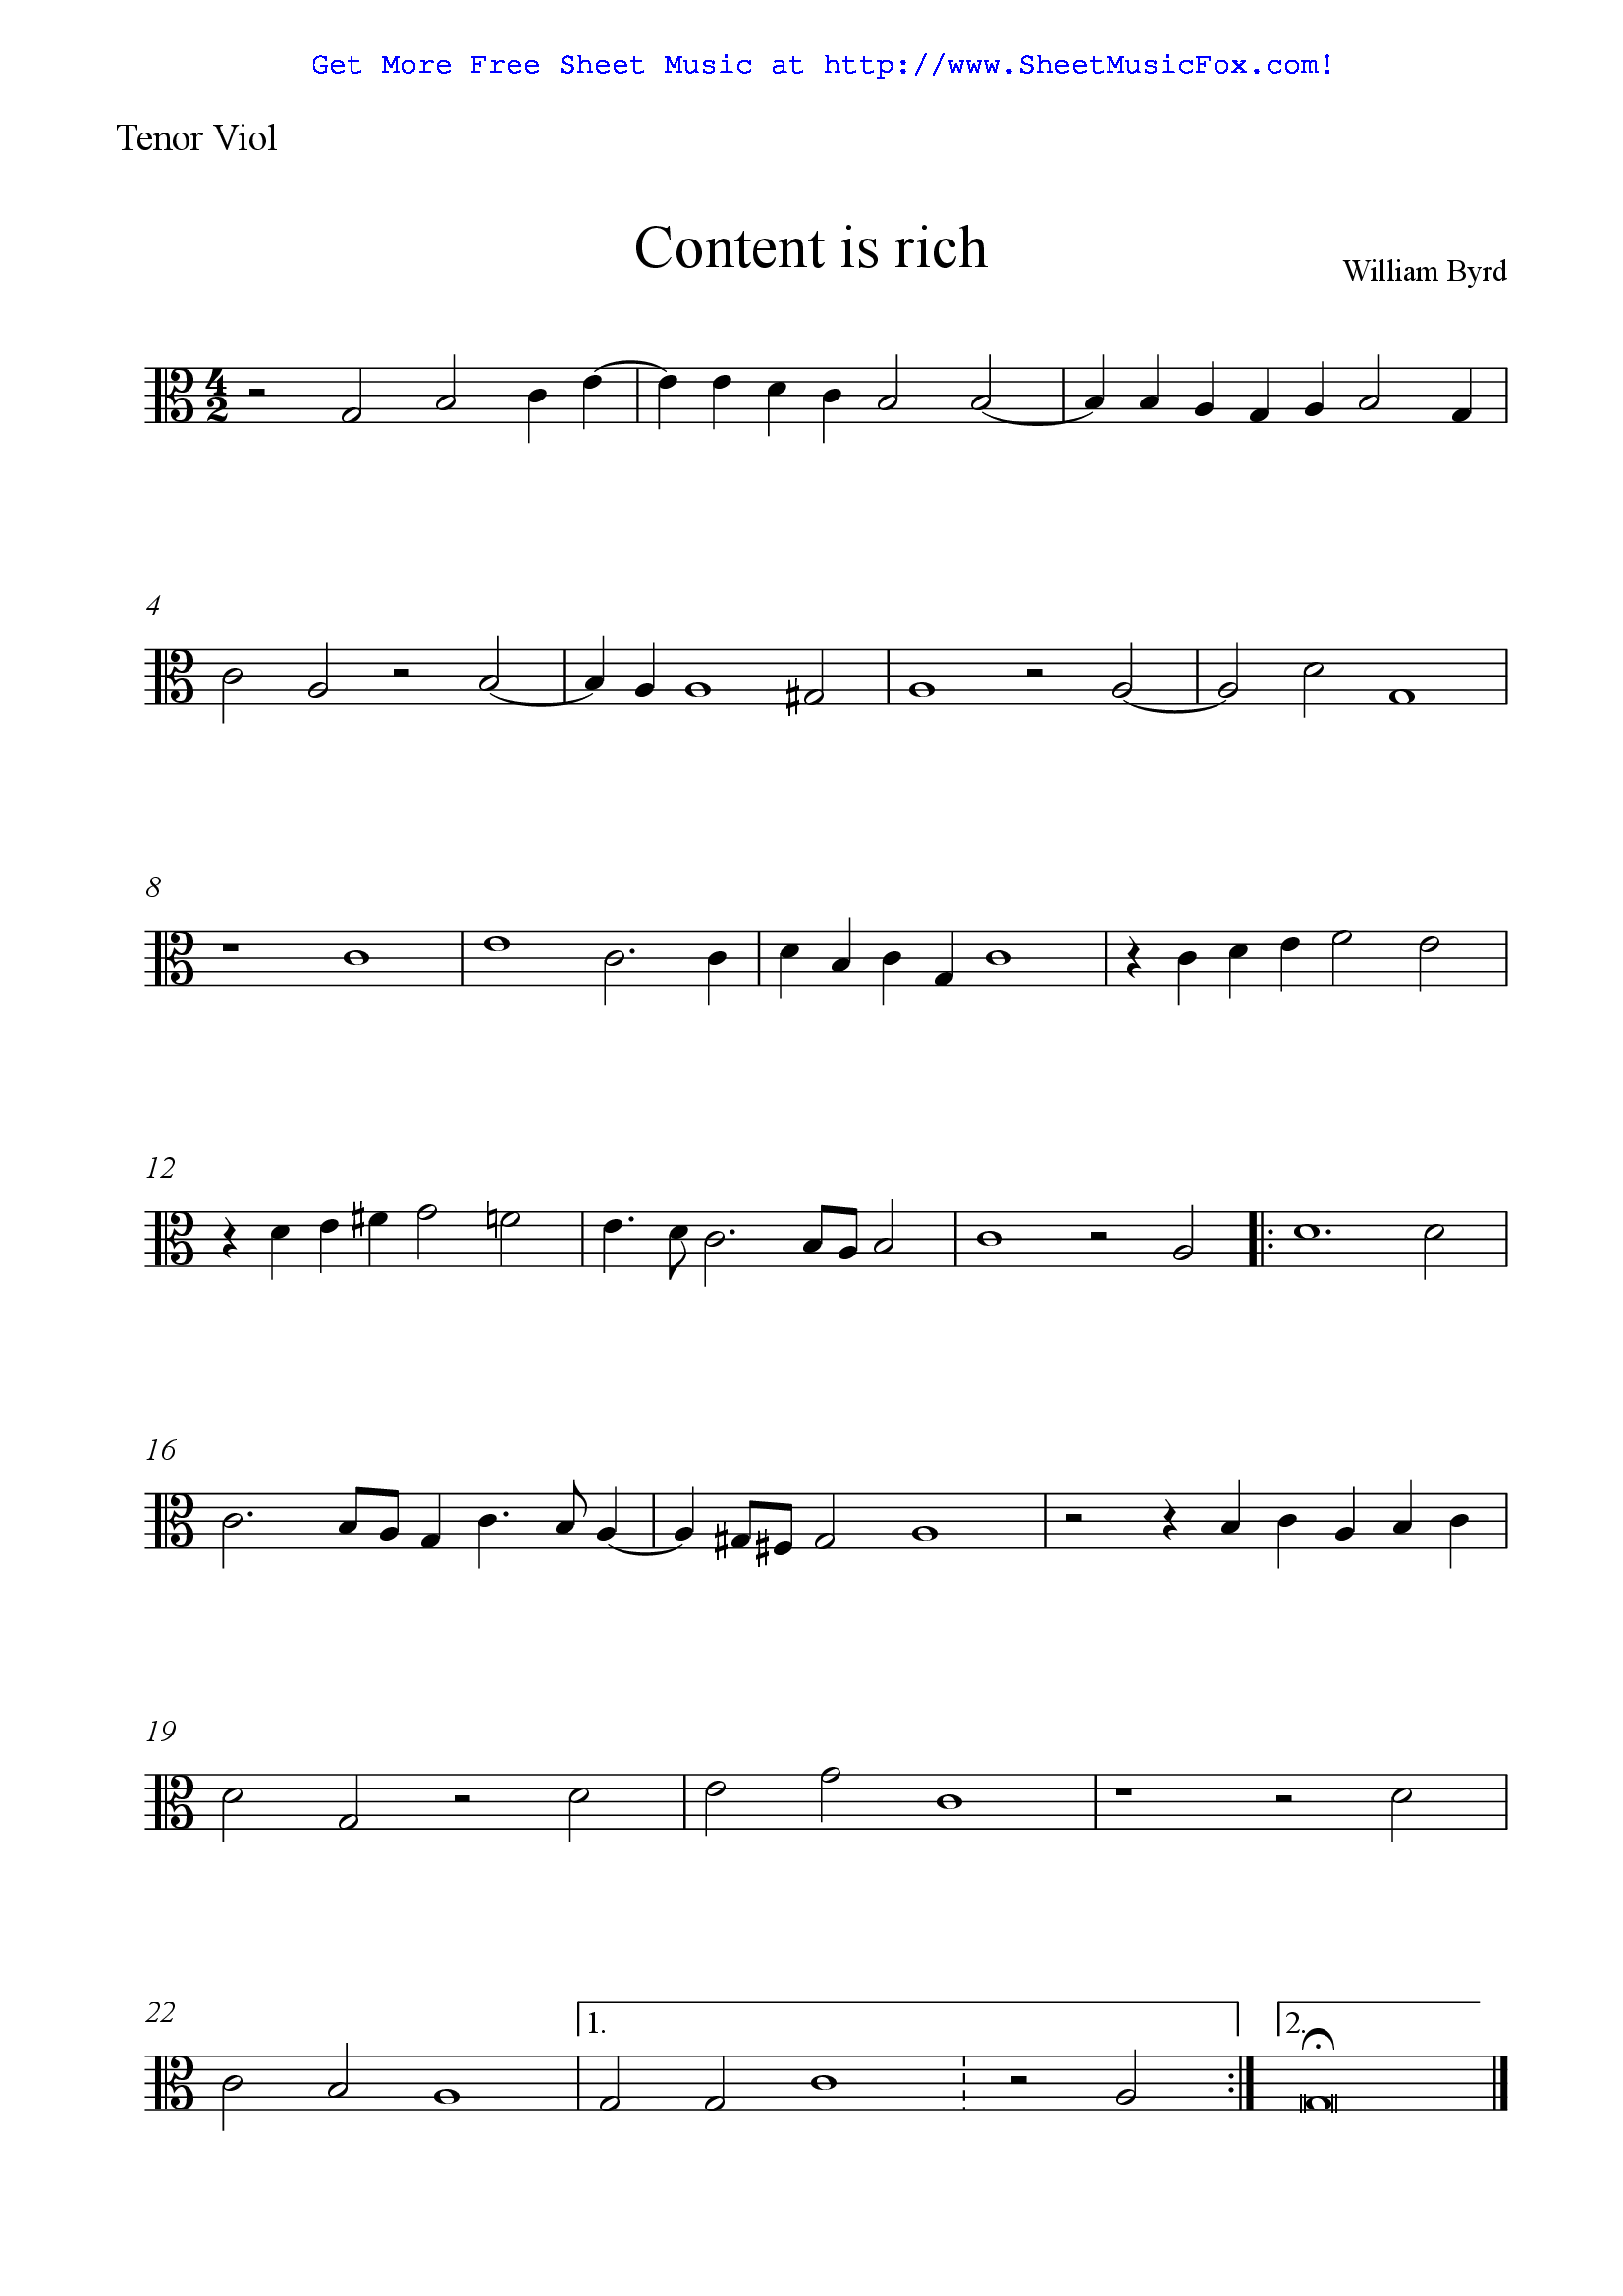 Free Sheet Music For Content Is Rich Byrd William By William Byrd